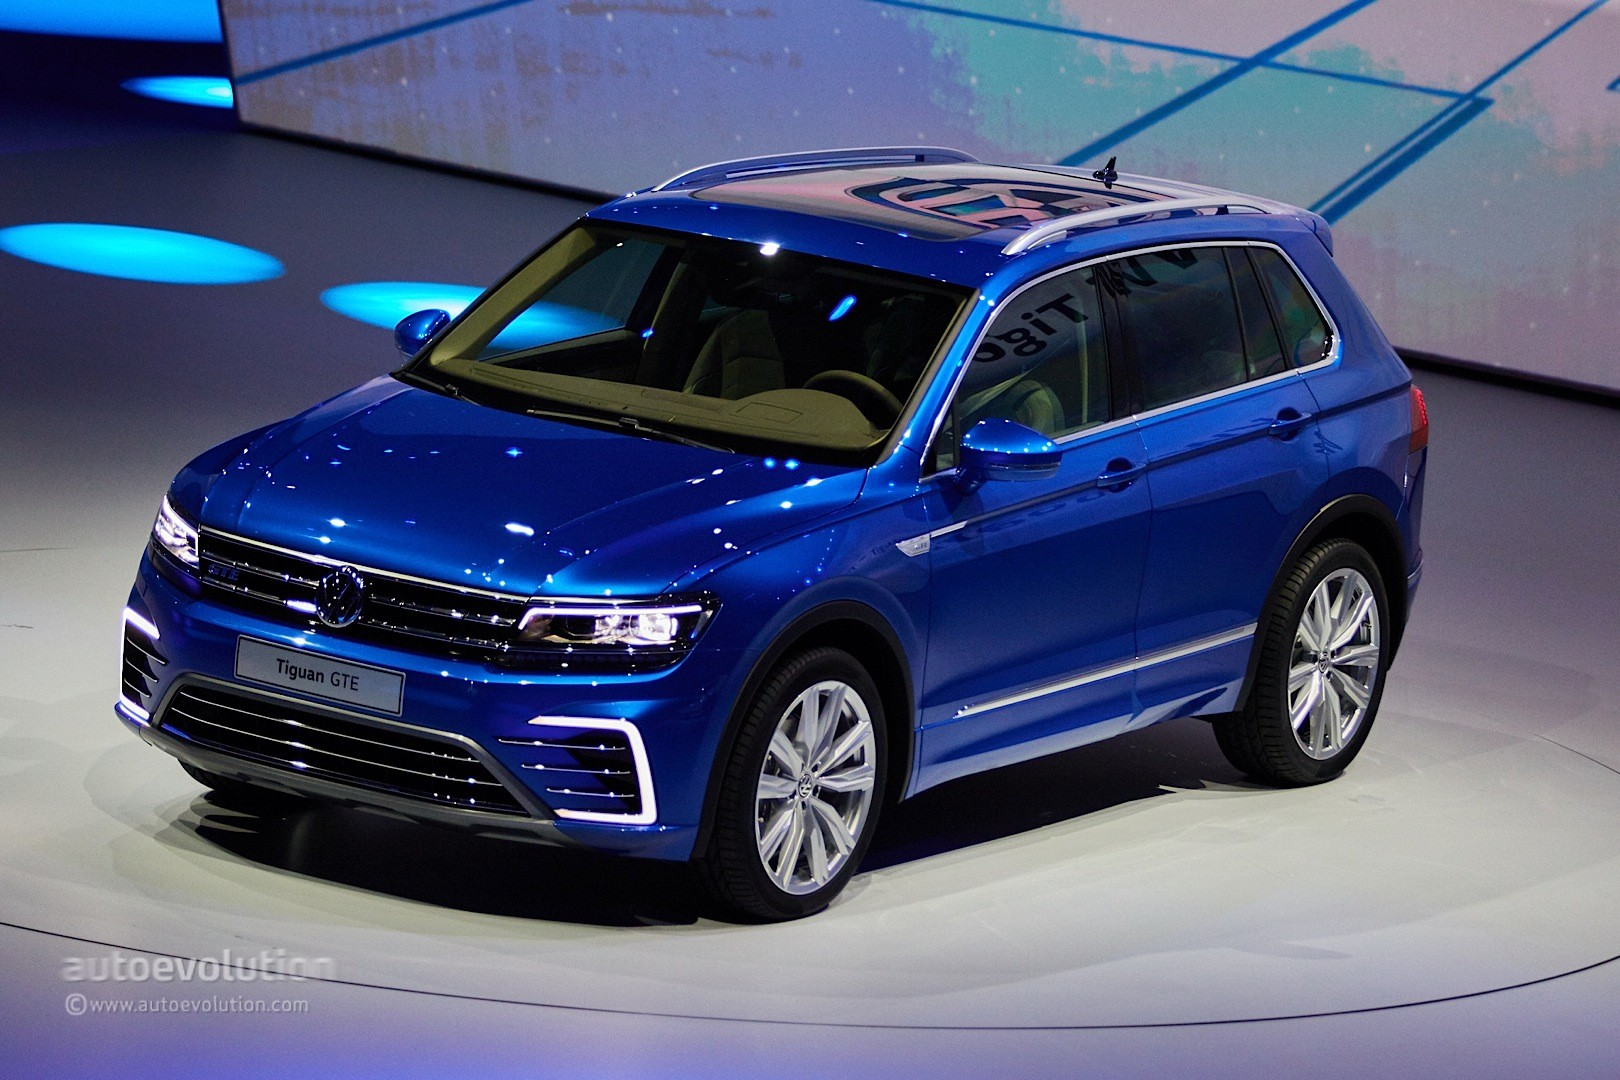 Volkswagen Tiguan Gte Concept Revealed With 218 Ps And 50